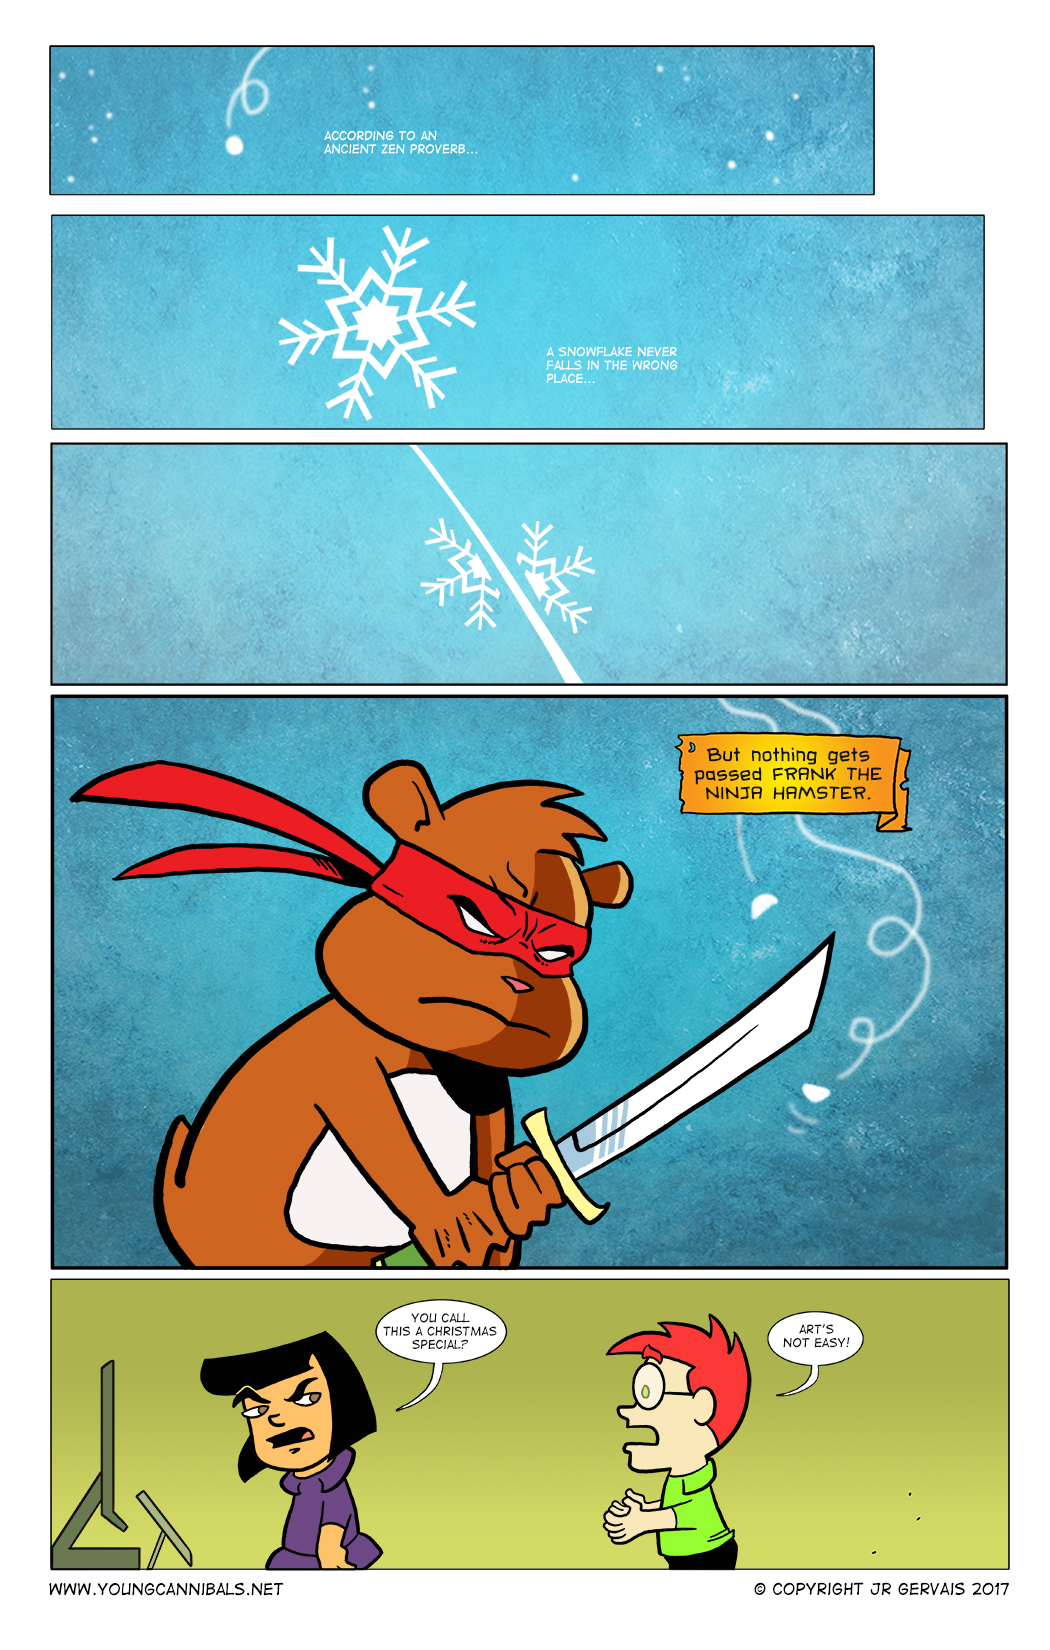 A Frank the Ninja Hamster Christmas Special